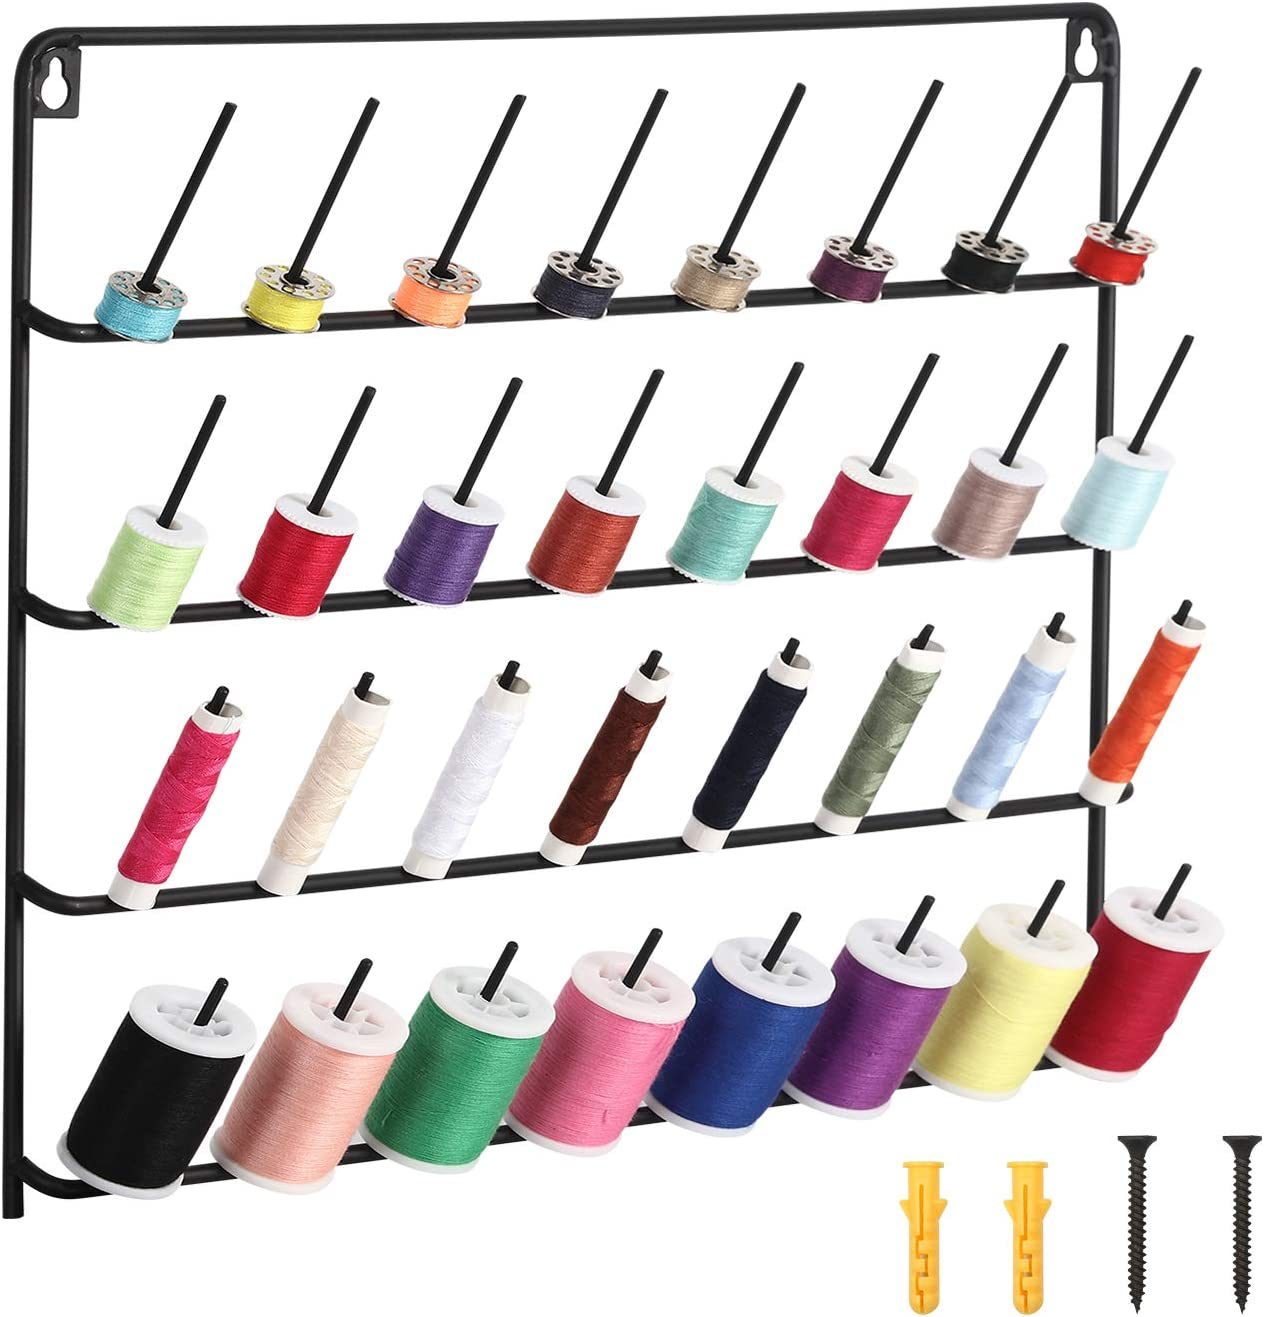 32-Spool Sewing Thread Rack, Wall-Mounted Metal Thread Holder with Hanging Tools for Organize Sewing Thread, Embroidery (Suitable for Large Thread)